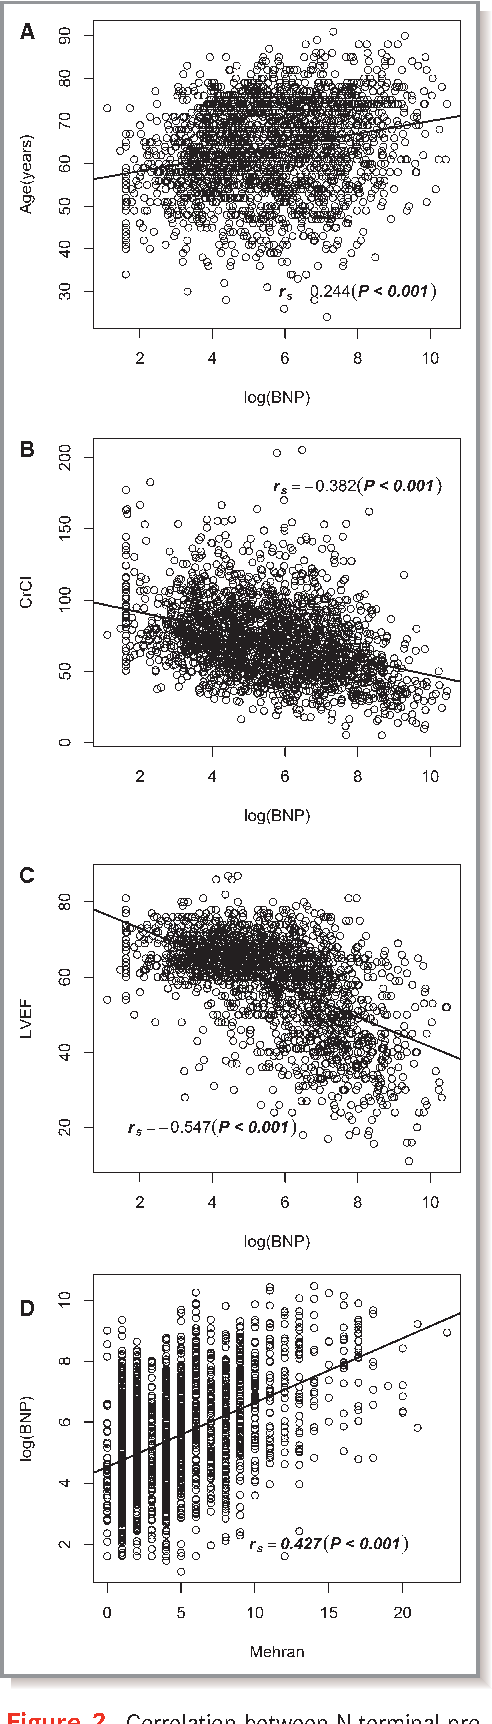 Figure 2. Correlation between N-terminal probrain natriuretic peptide (BNP) and age (A), creatinine clearance (CrCl) (B), left ventricular ejection fraction (LVEF) (C), and Mehran contrast-induced nephropathy score (D).